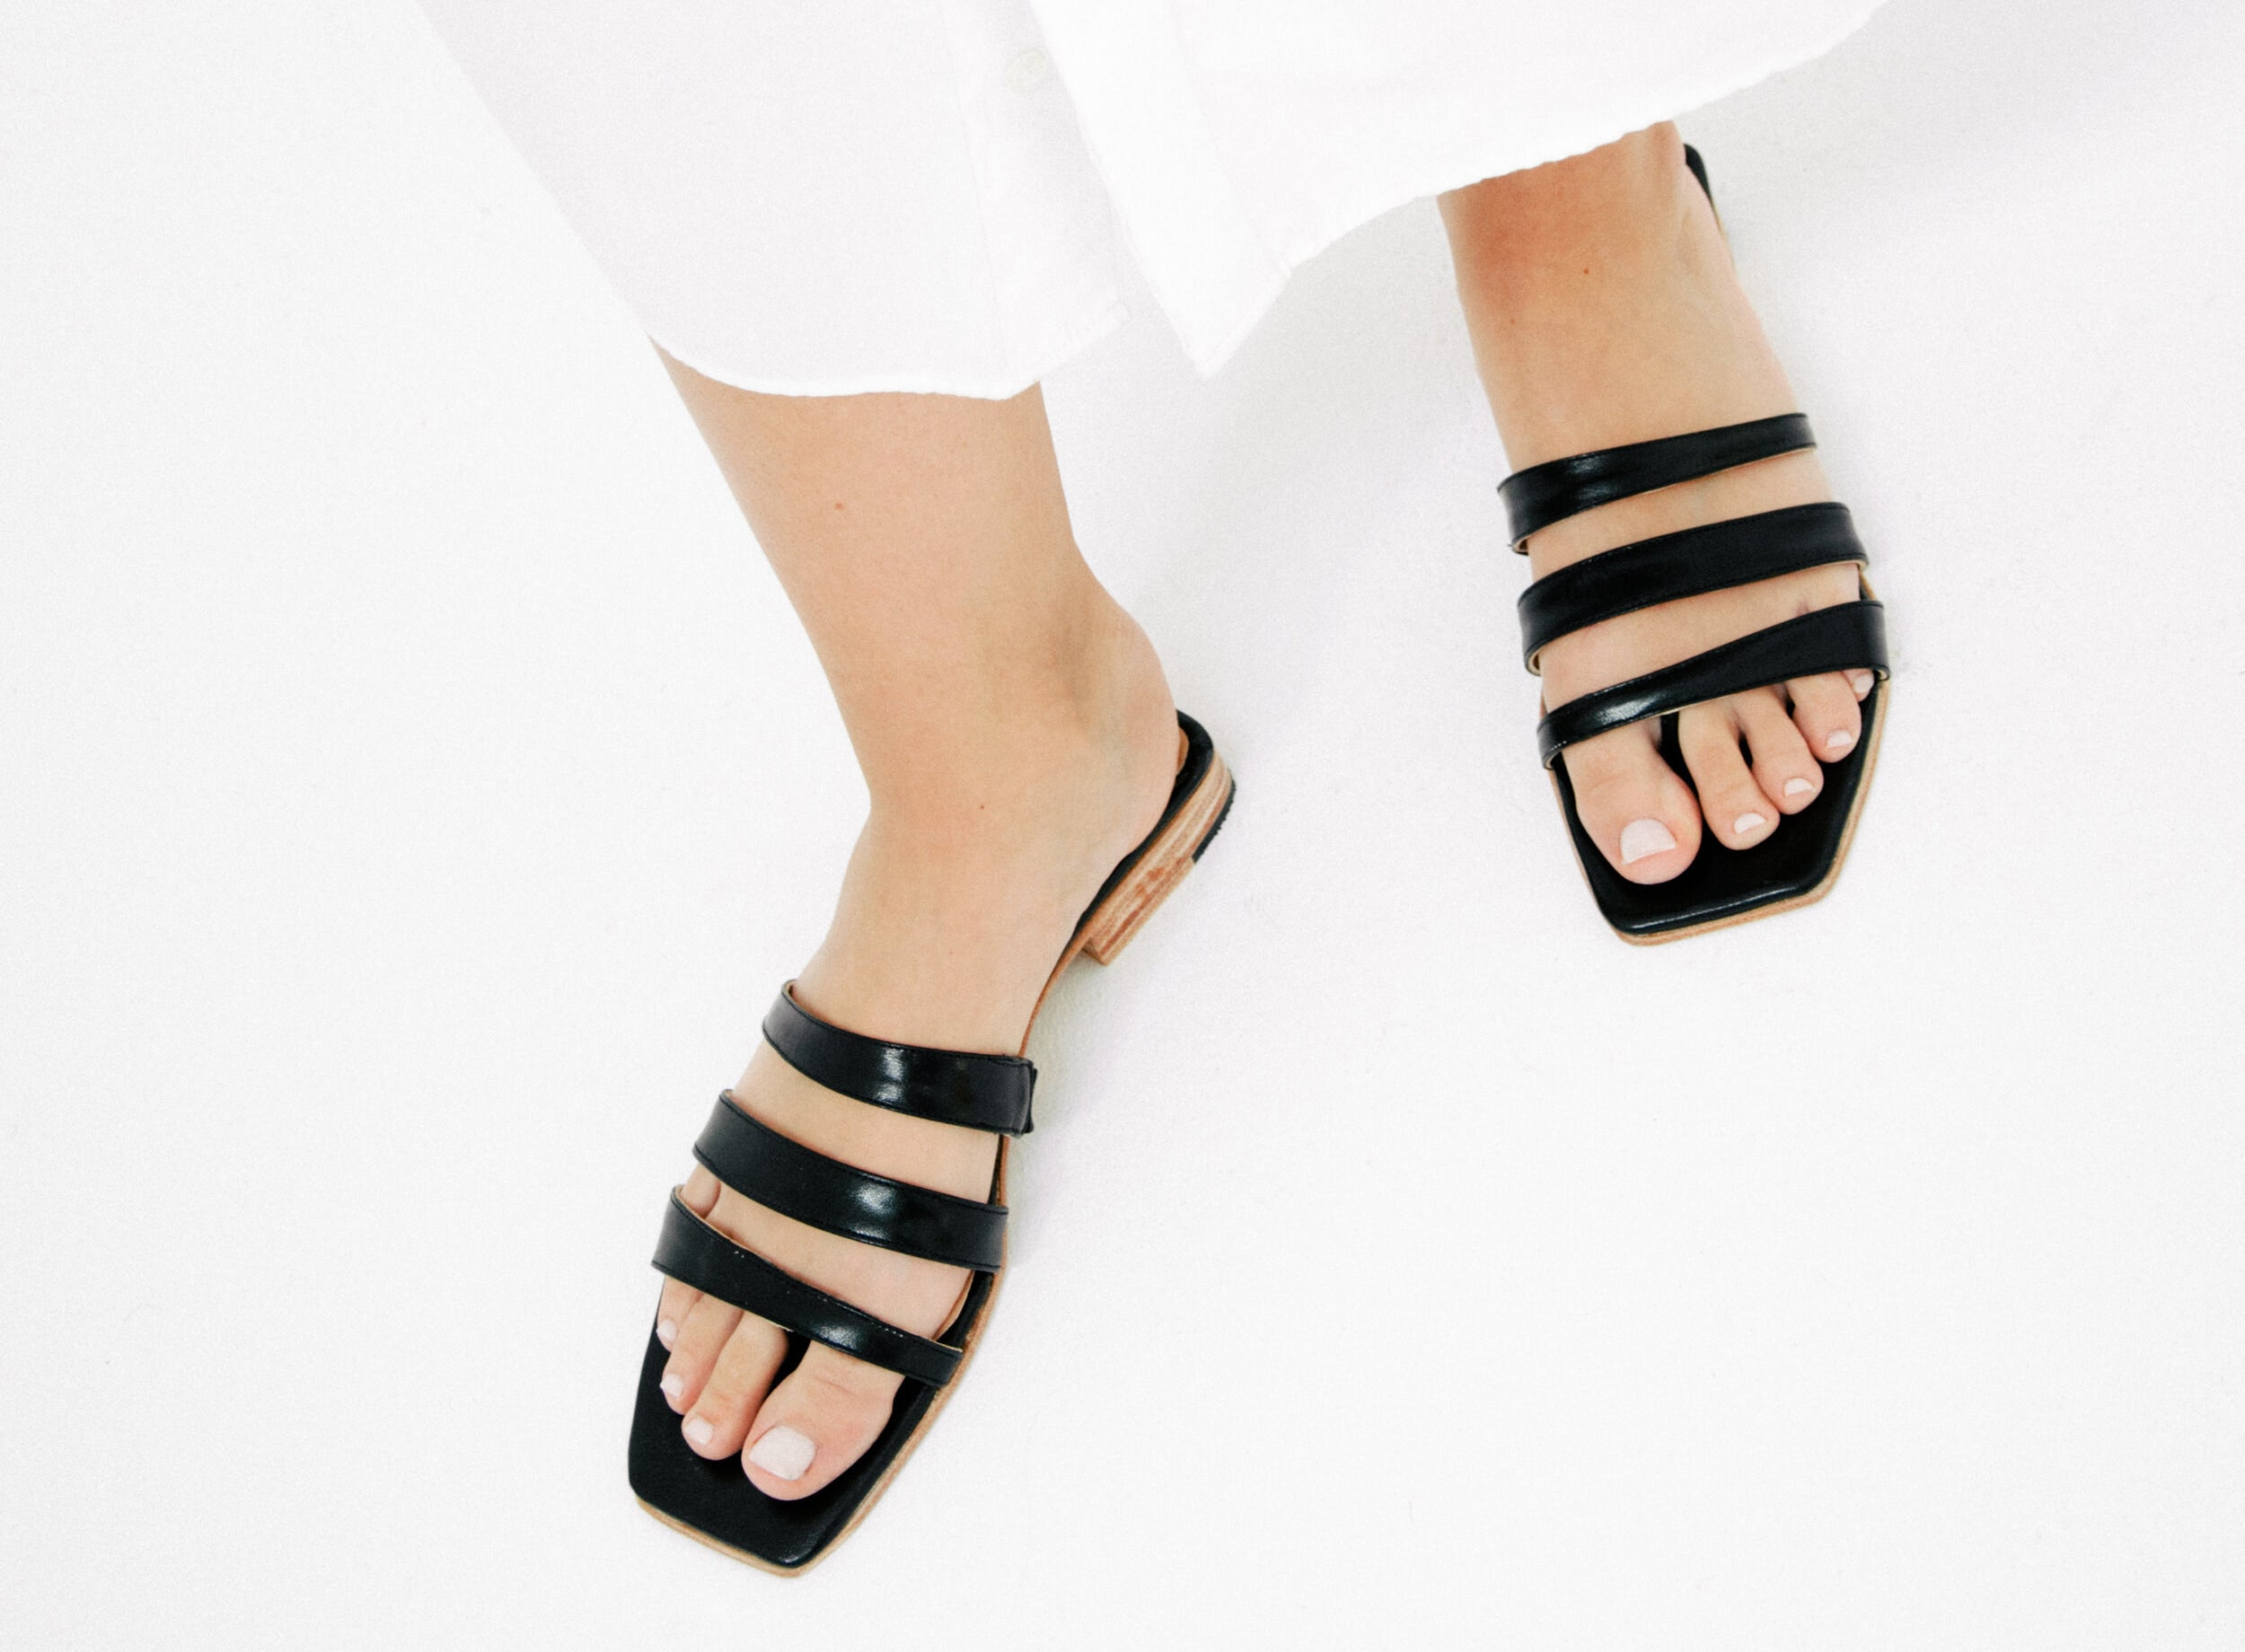 The sandals in black